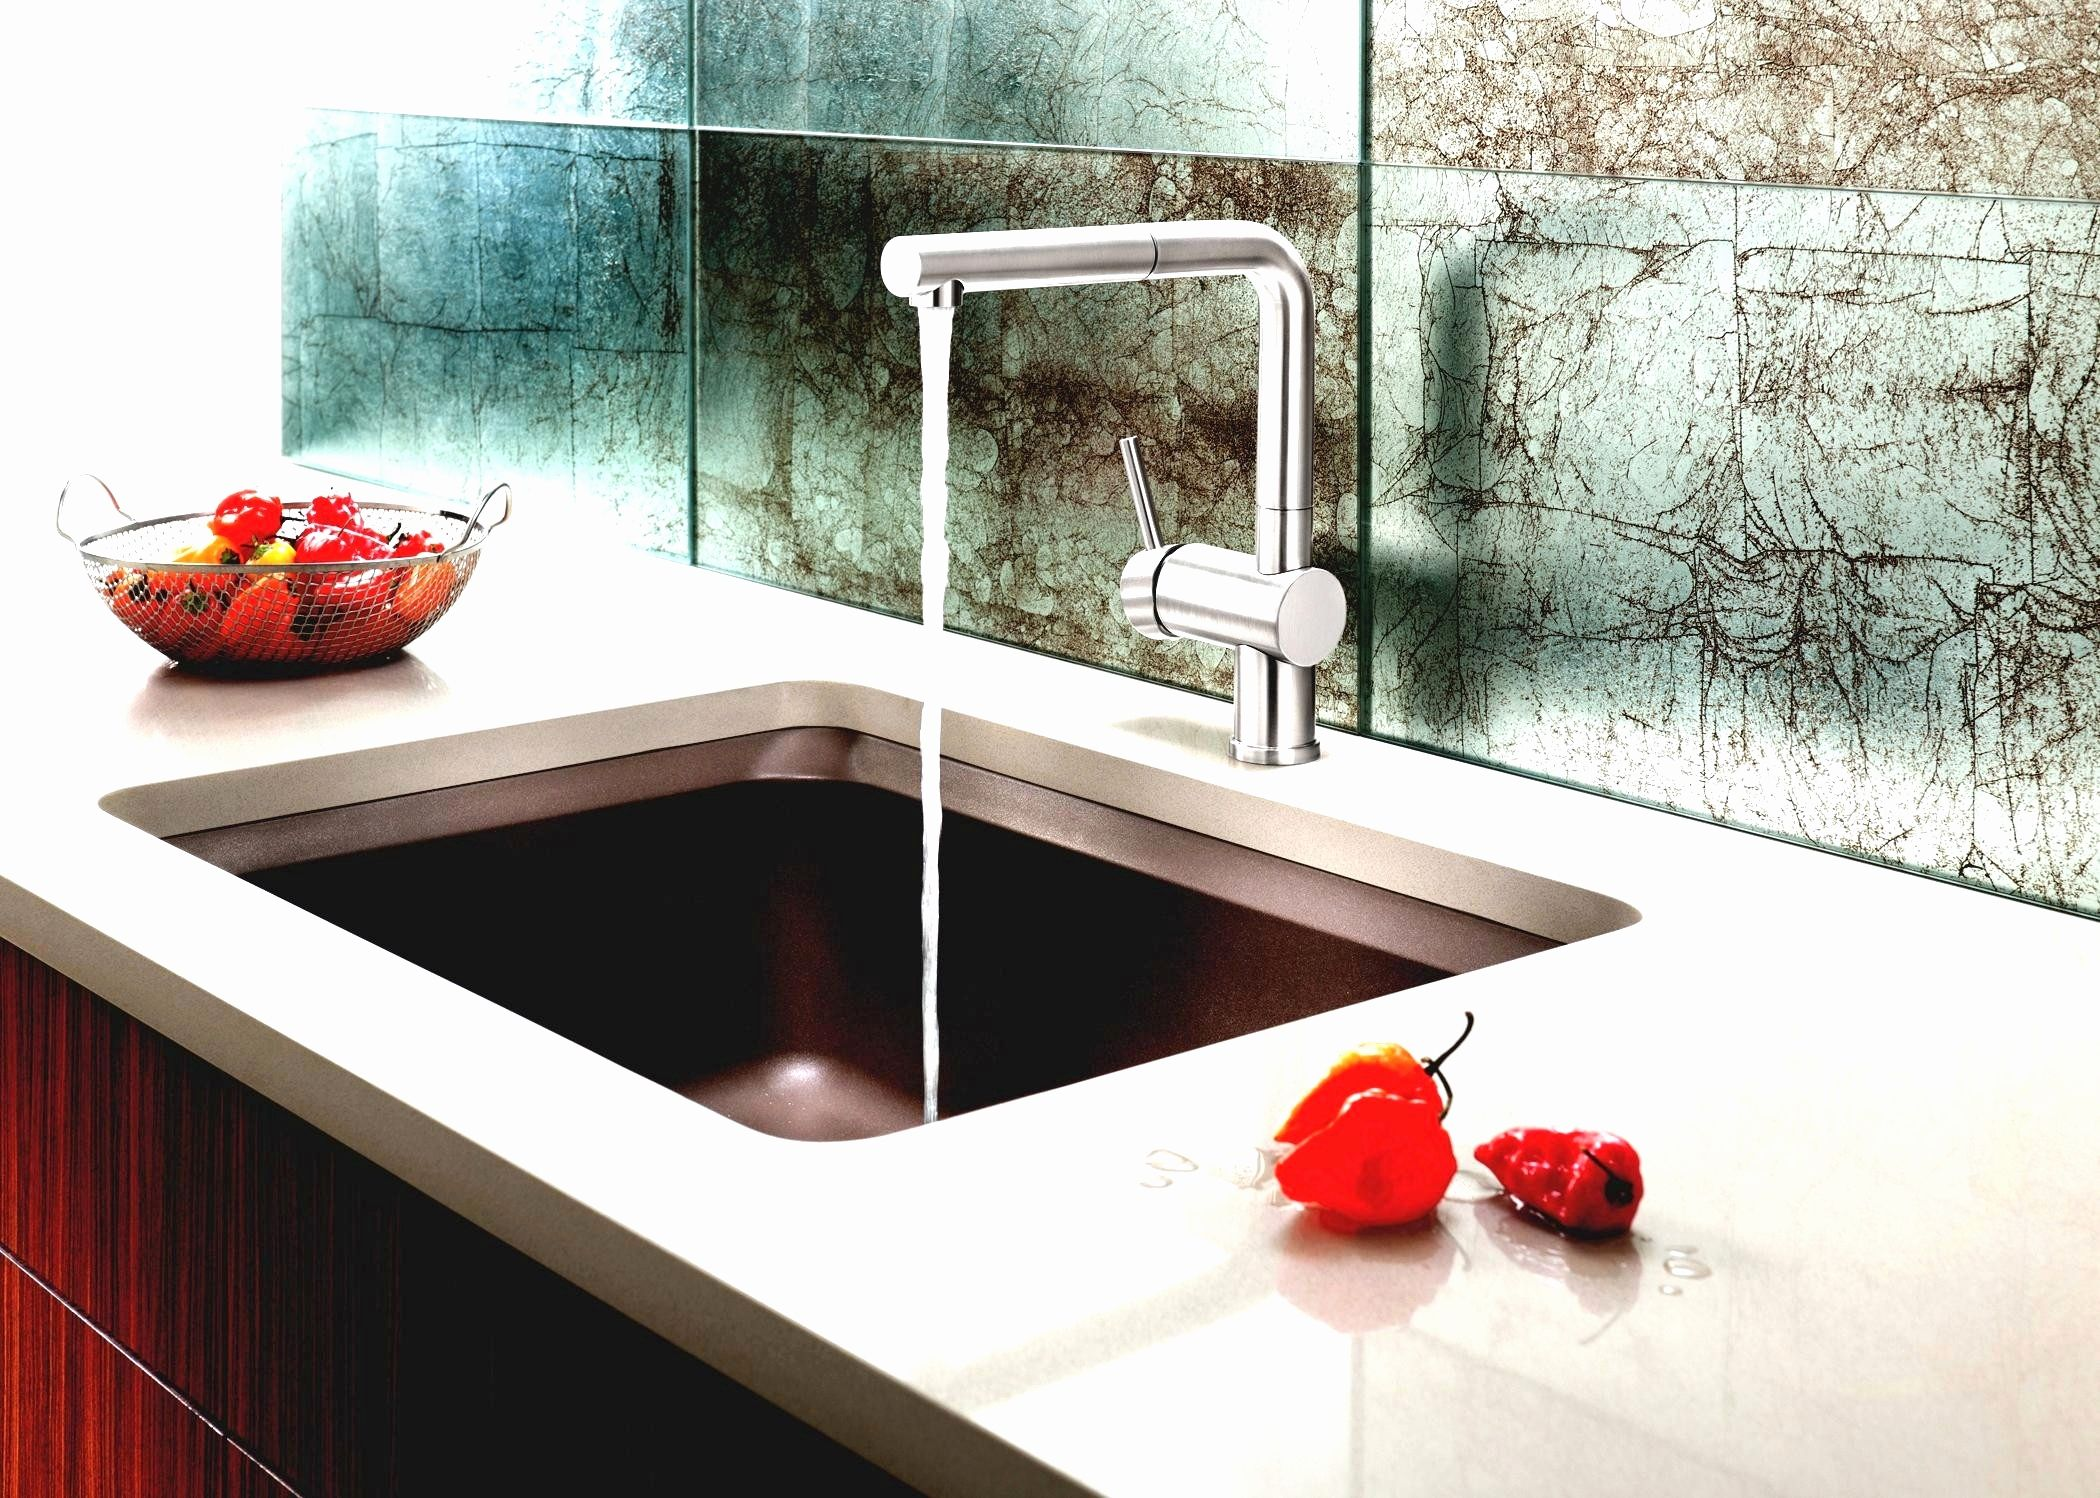 No Counter Space Solutions For A Clean And Clutter Free Kitchen Sink Zone Kitchen Sink Remodel Kitchen Sink Caddy Clutter Free Kitchen